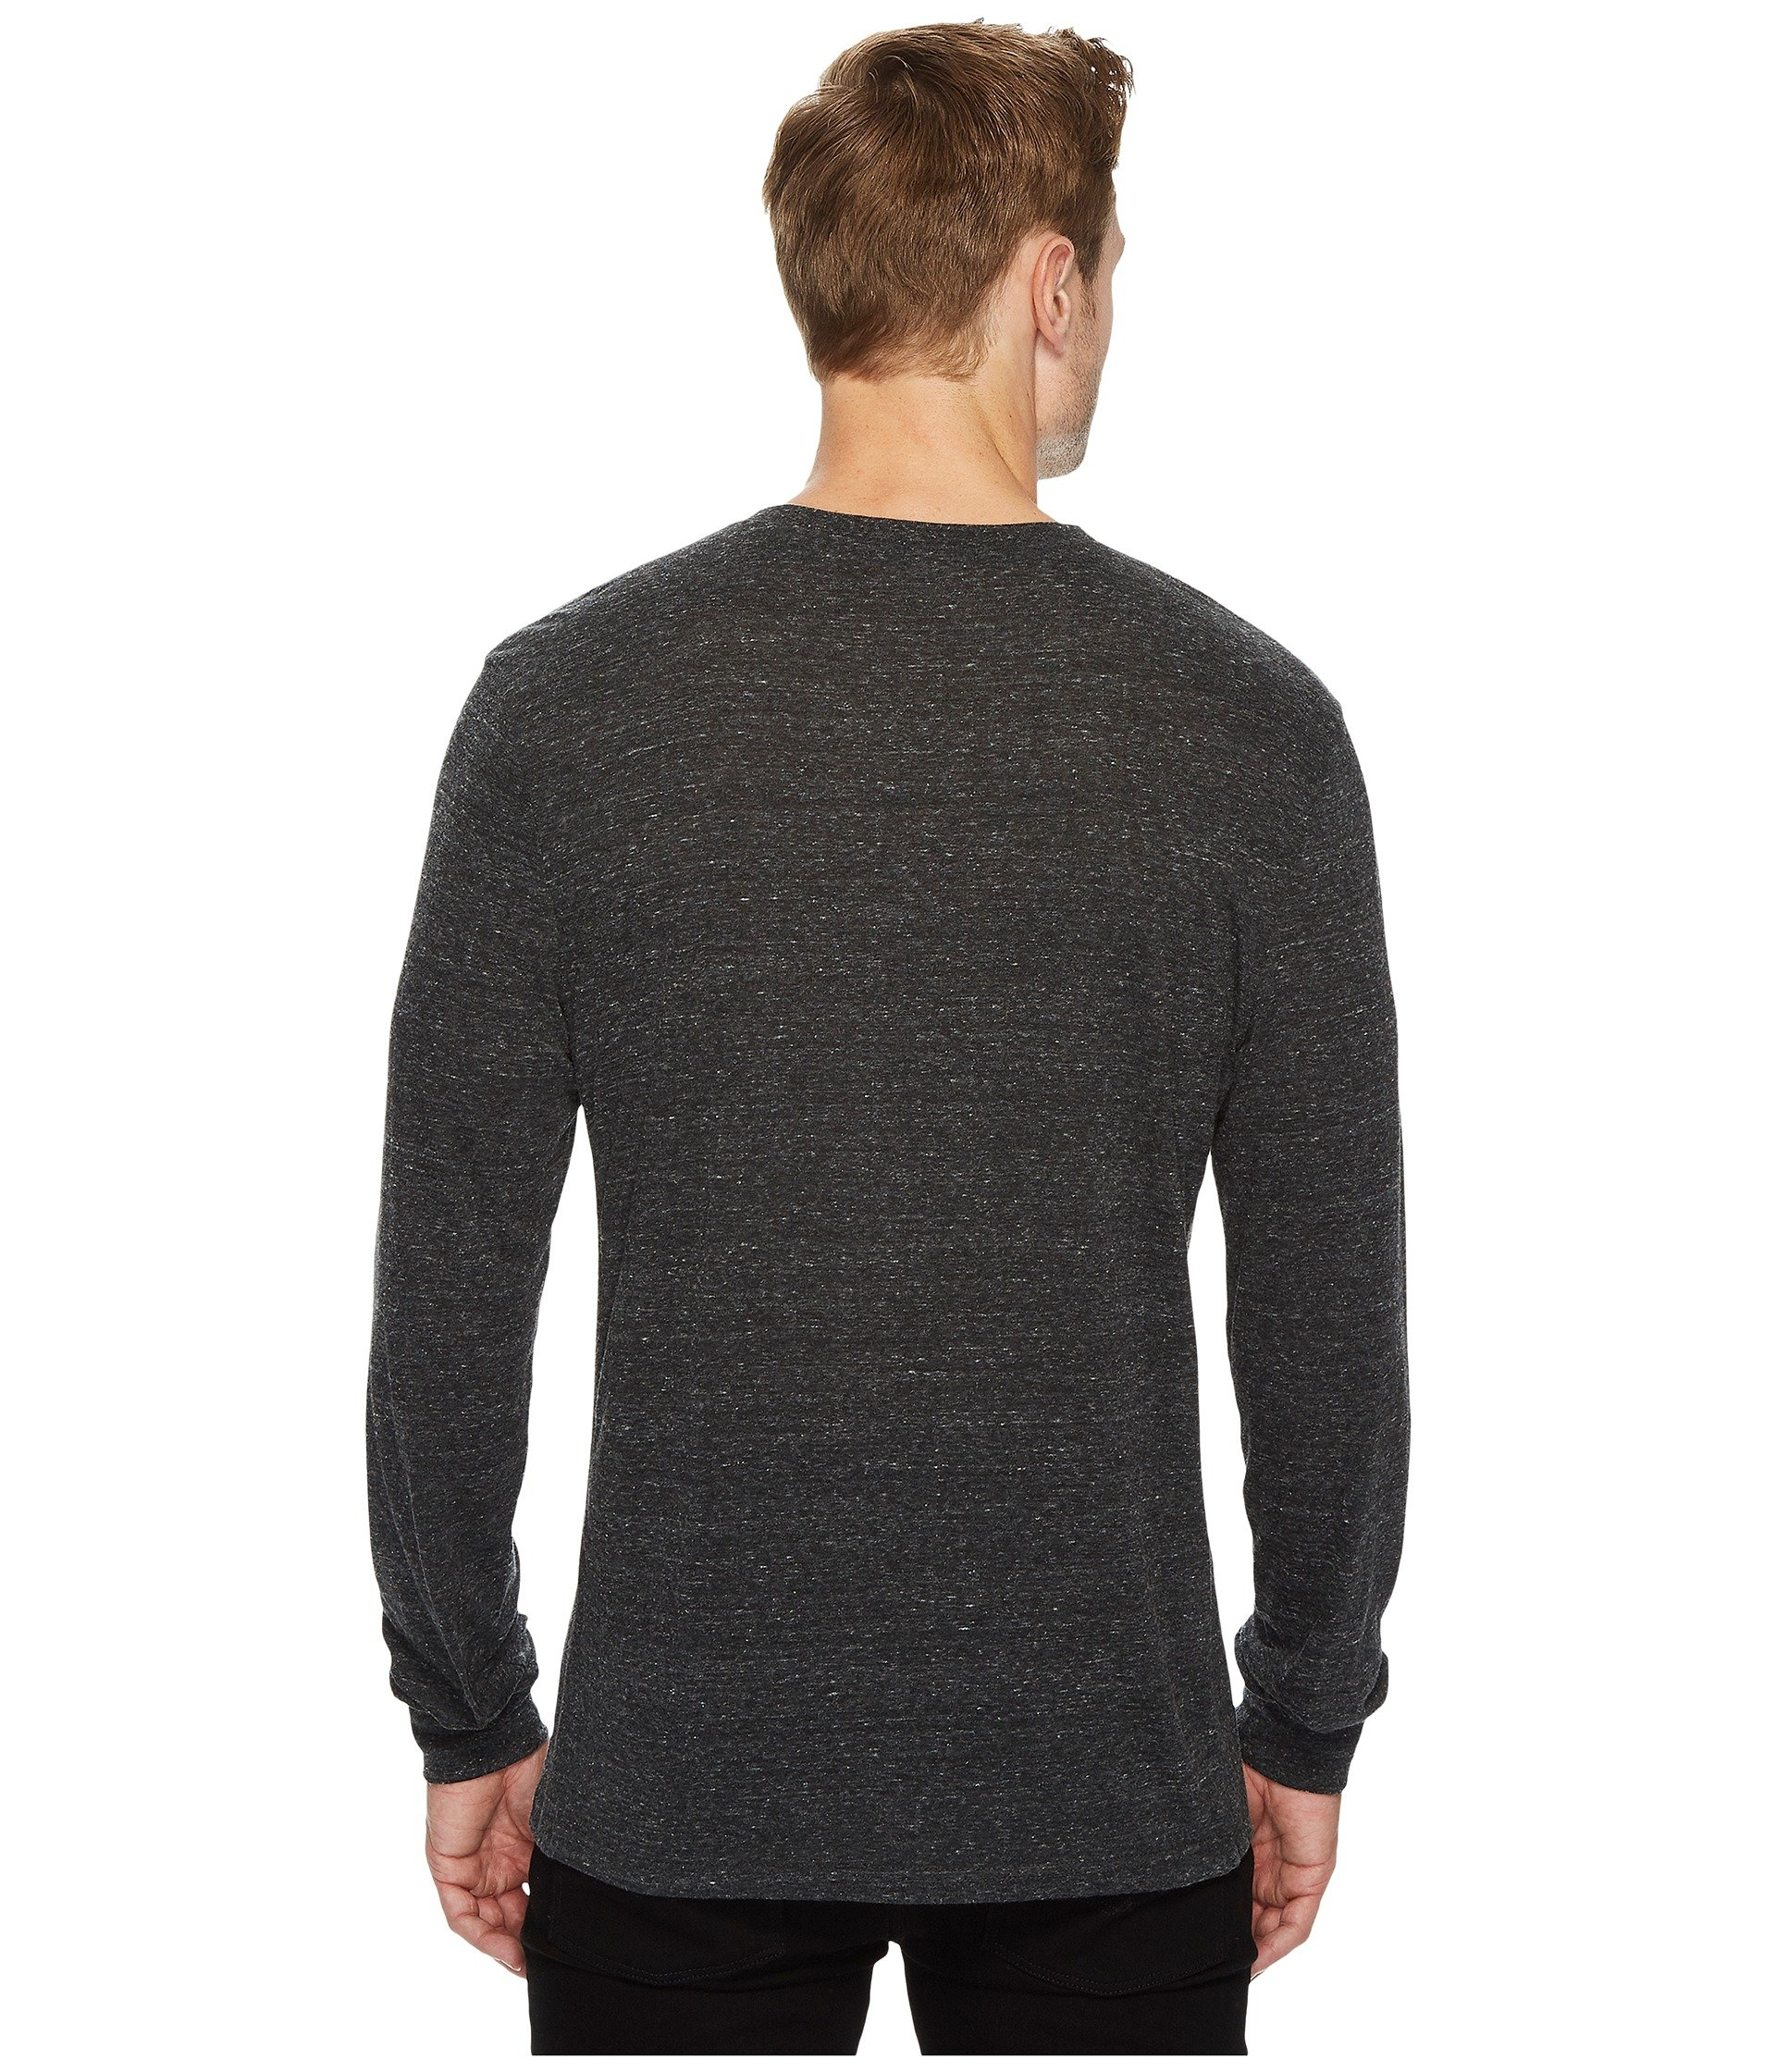 Sleeved Heather blend Black Threads Tri 4 Thought Long Henley wqp0XpS7